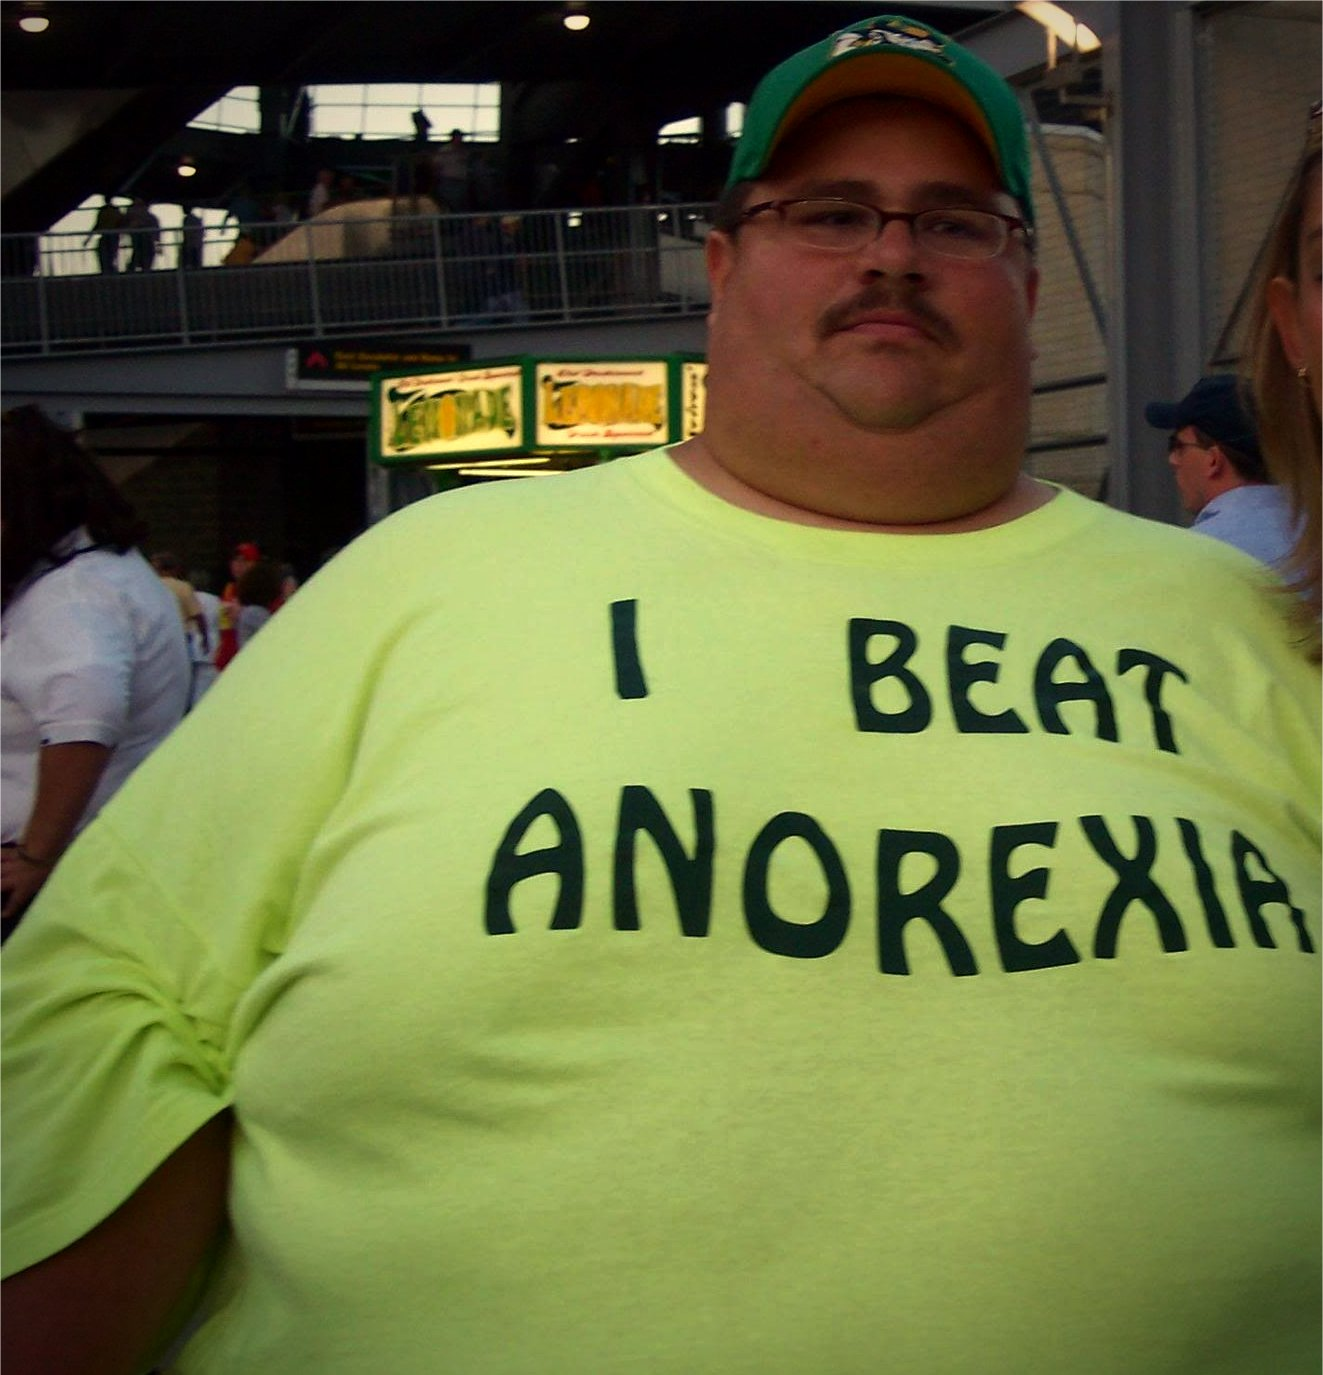 i-beat-anorexia-talking-t-shirts-fashion.jpg